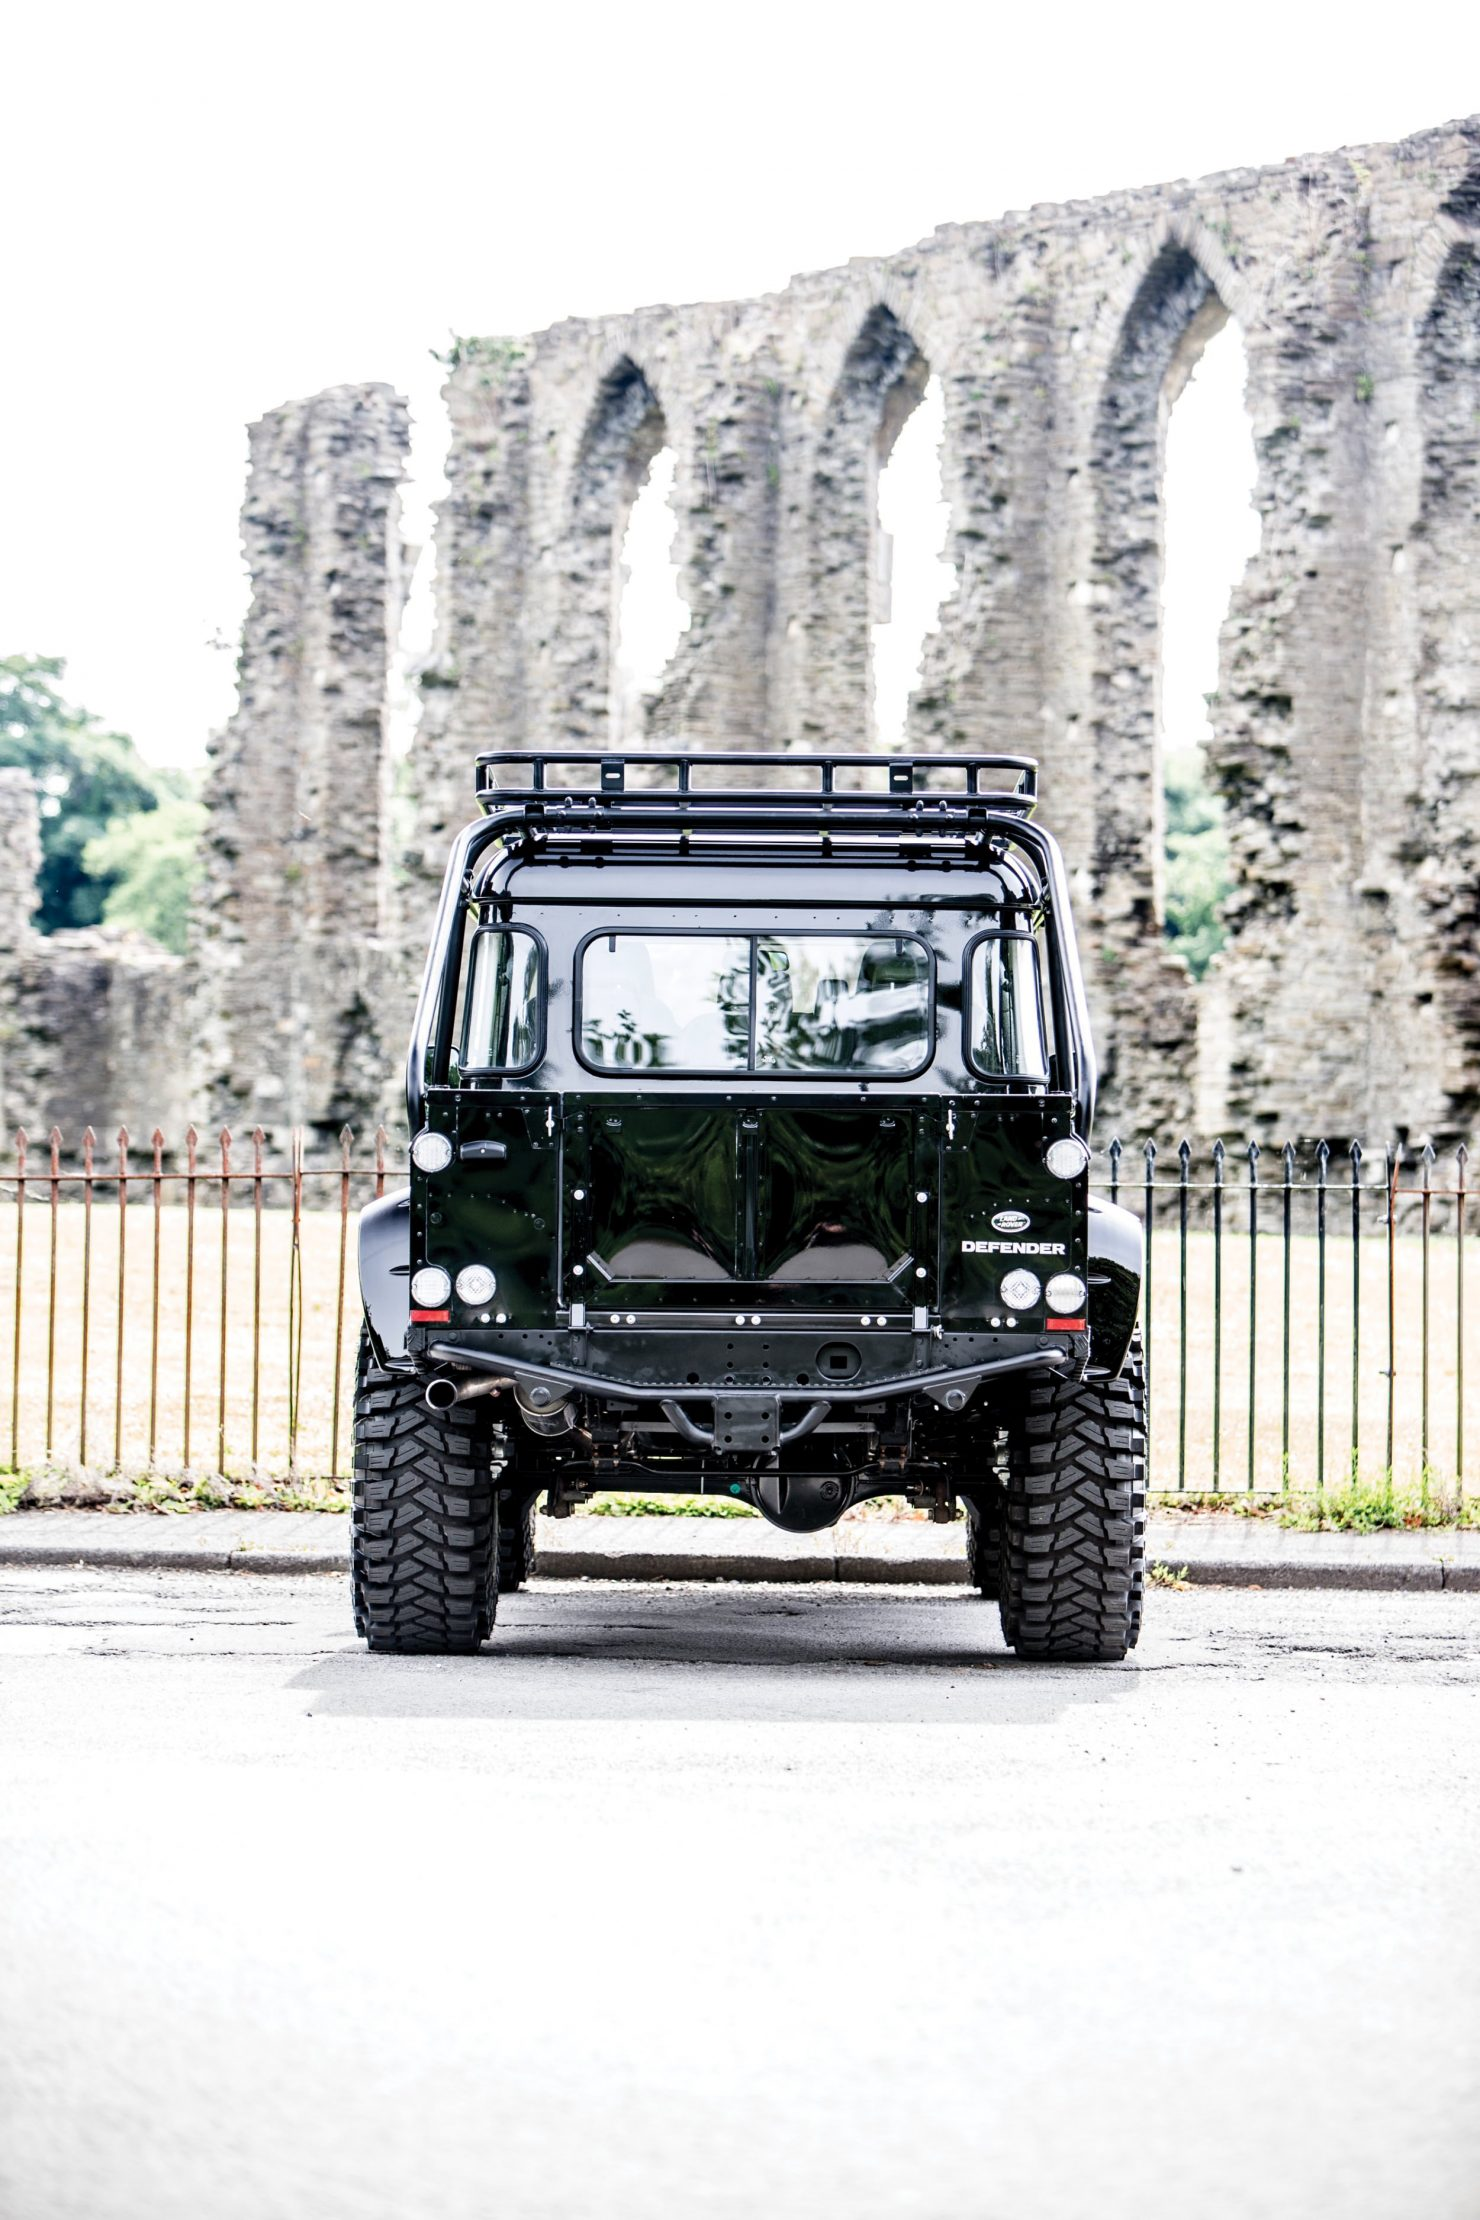 james bond spectre land rover defender svx 8 1480x2220 - Ex-James Bond Spectre - Land Rover Defender SVX